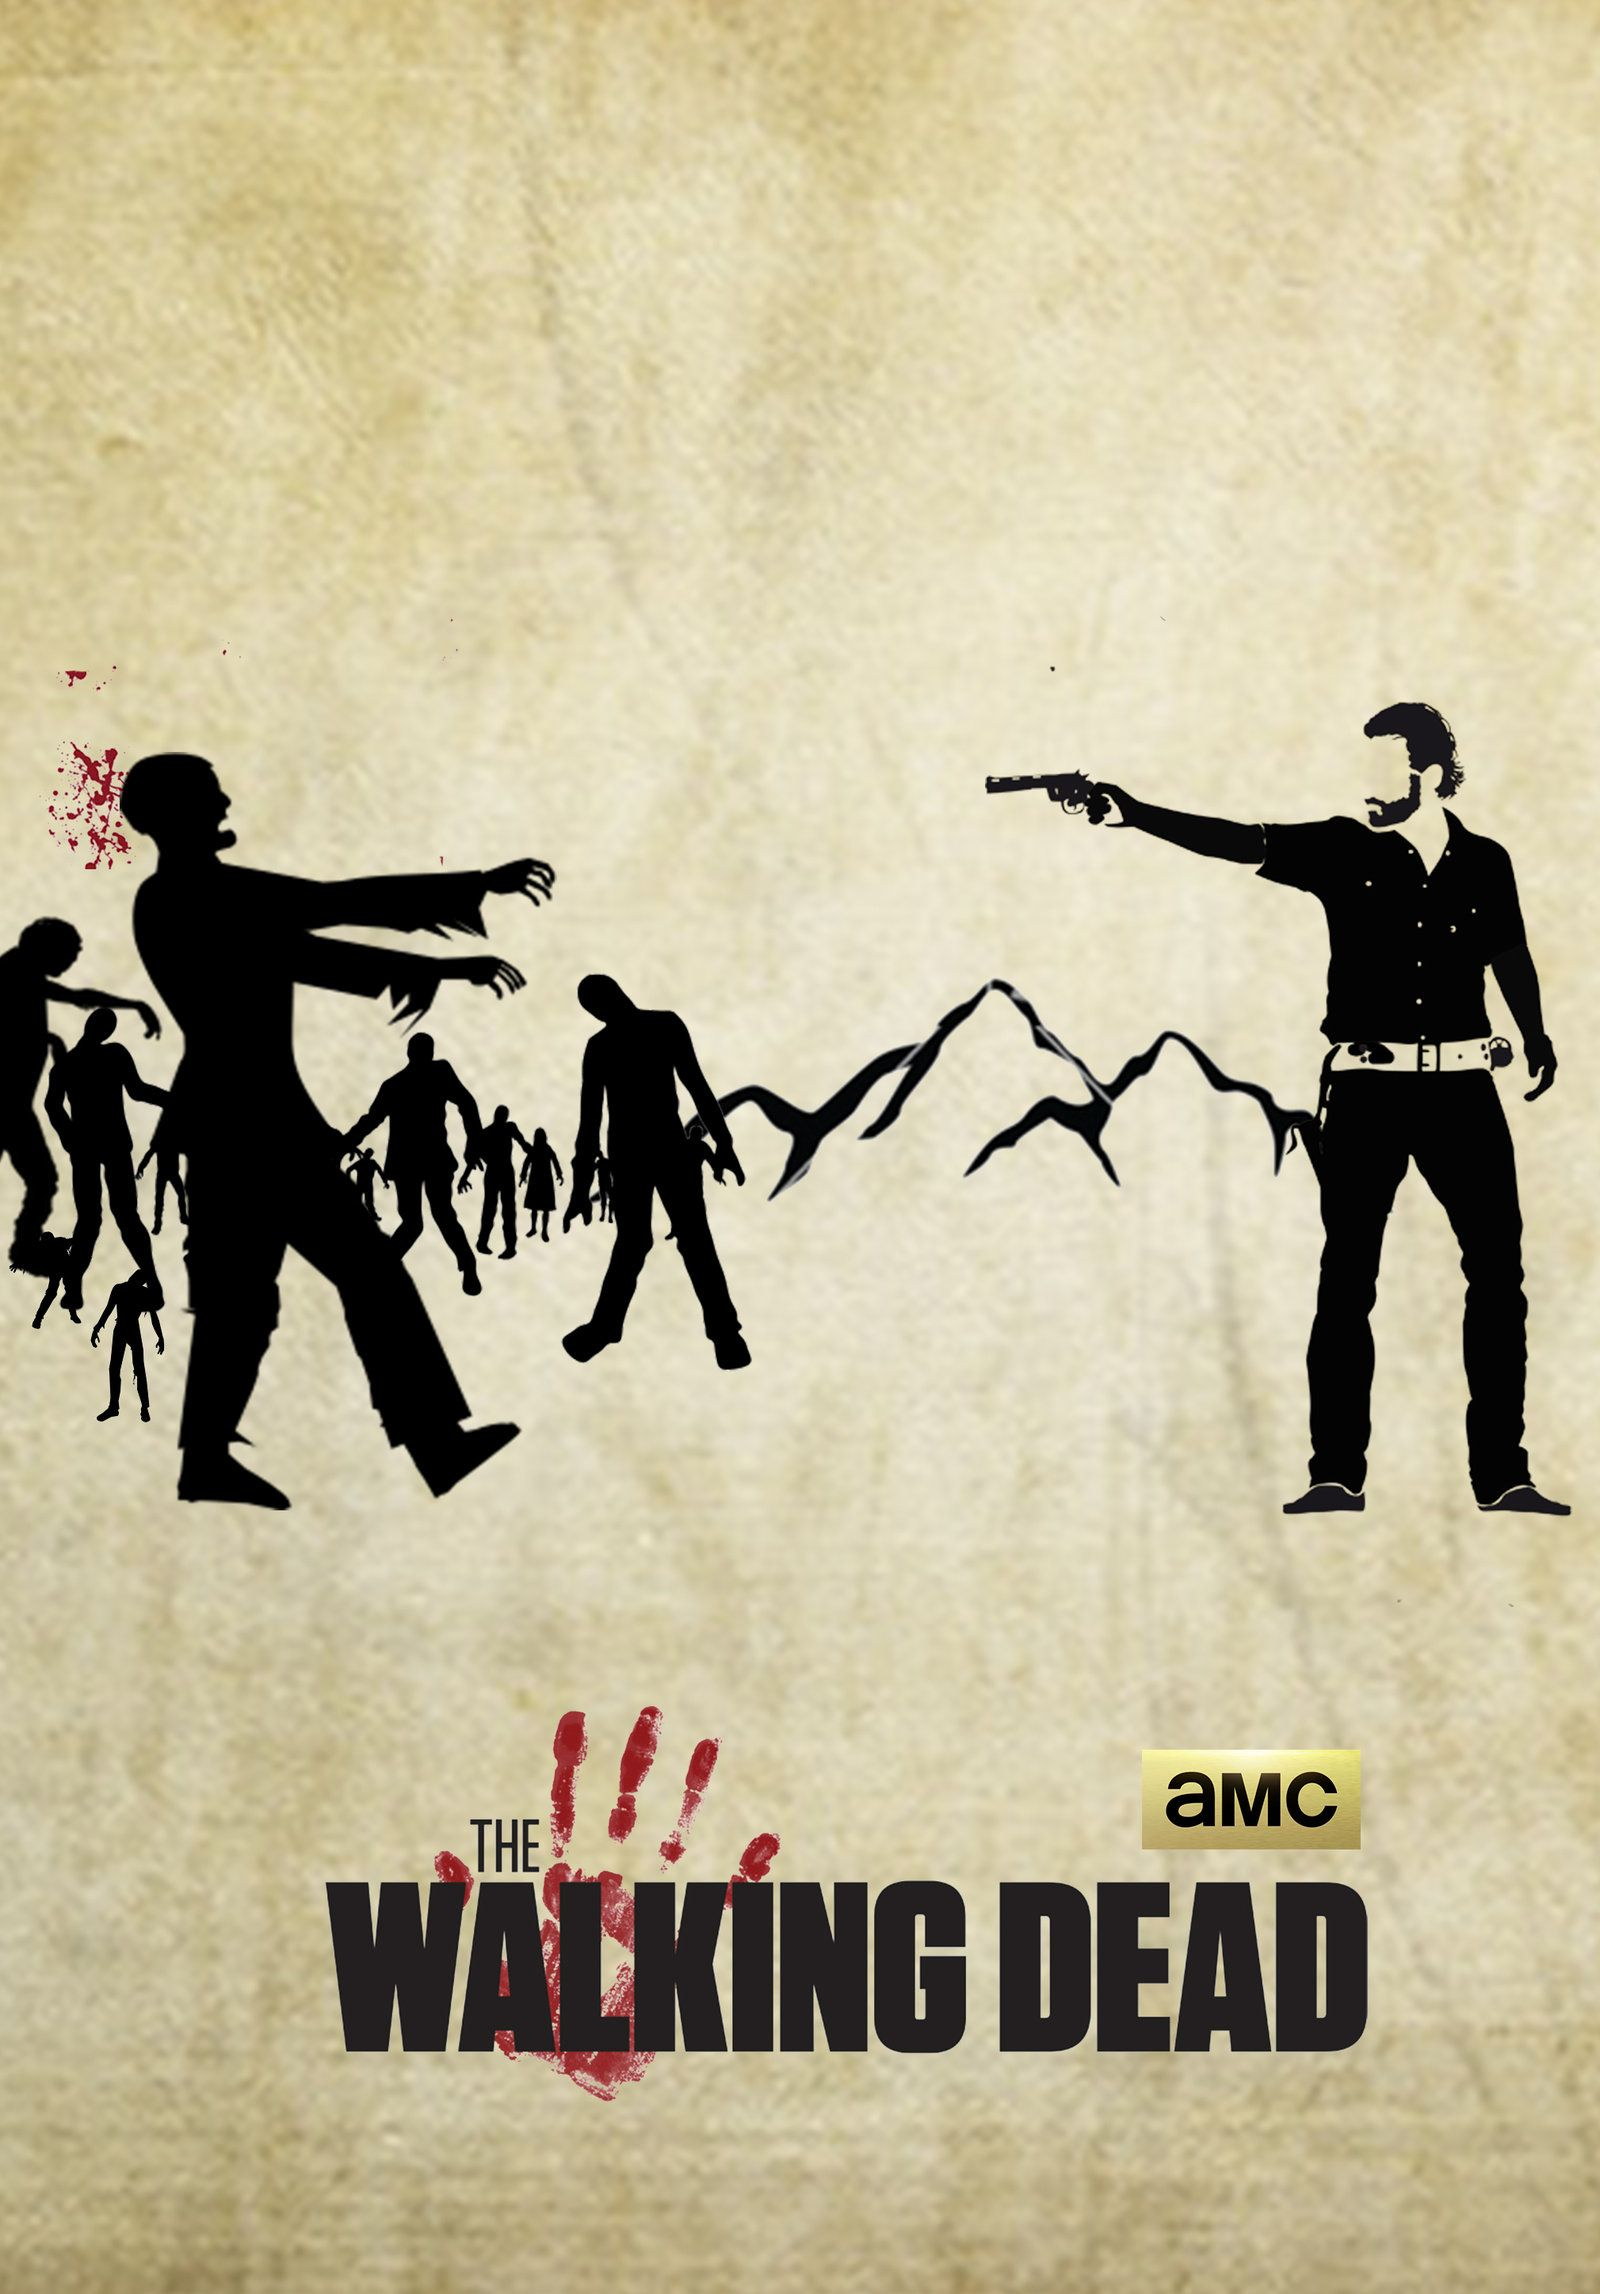 Amc S The Walking Dead Minimal Poster By Kartheekmummaneni The Walking Dead Poster The Walking Dead Poster Prints